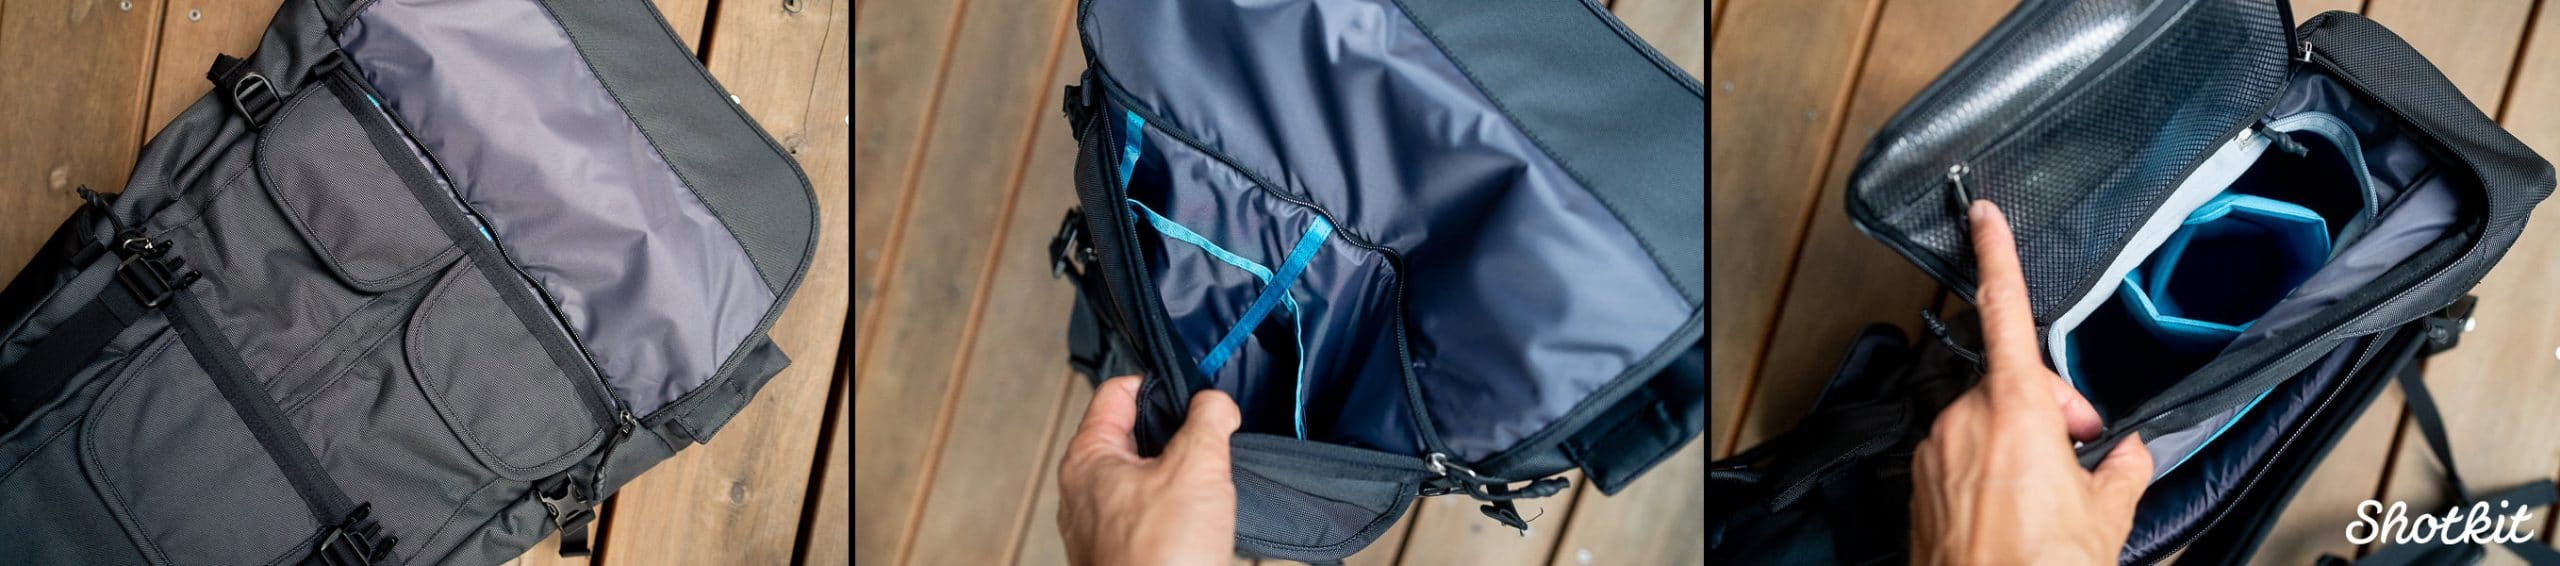 Thule Covert backpack